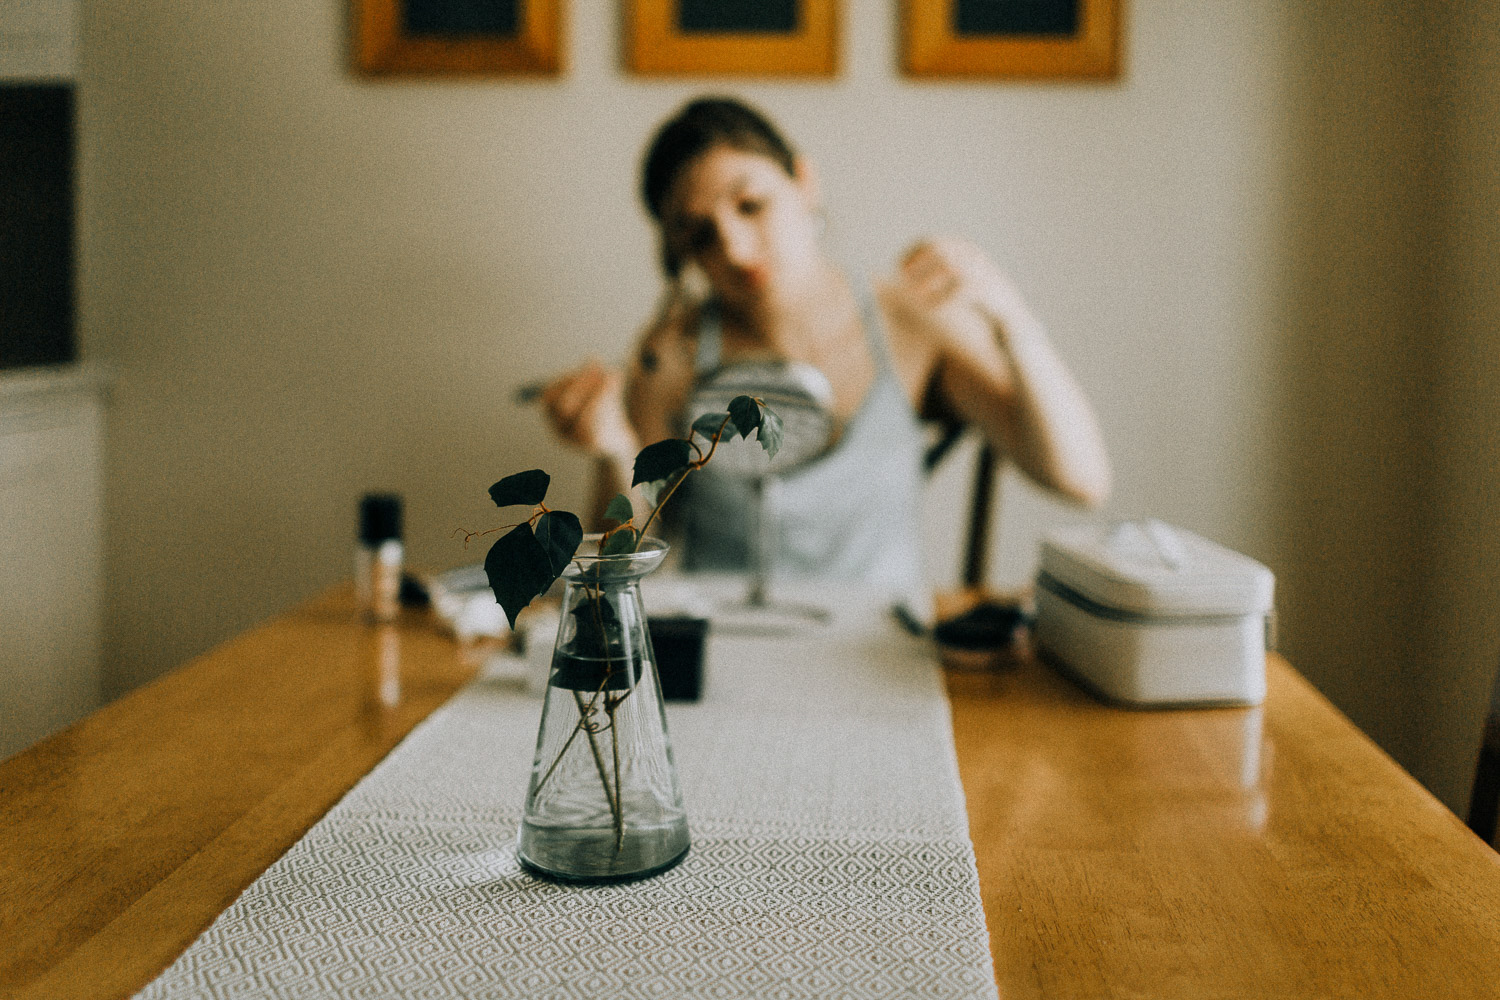 Image of bride gets ready at home